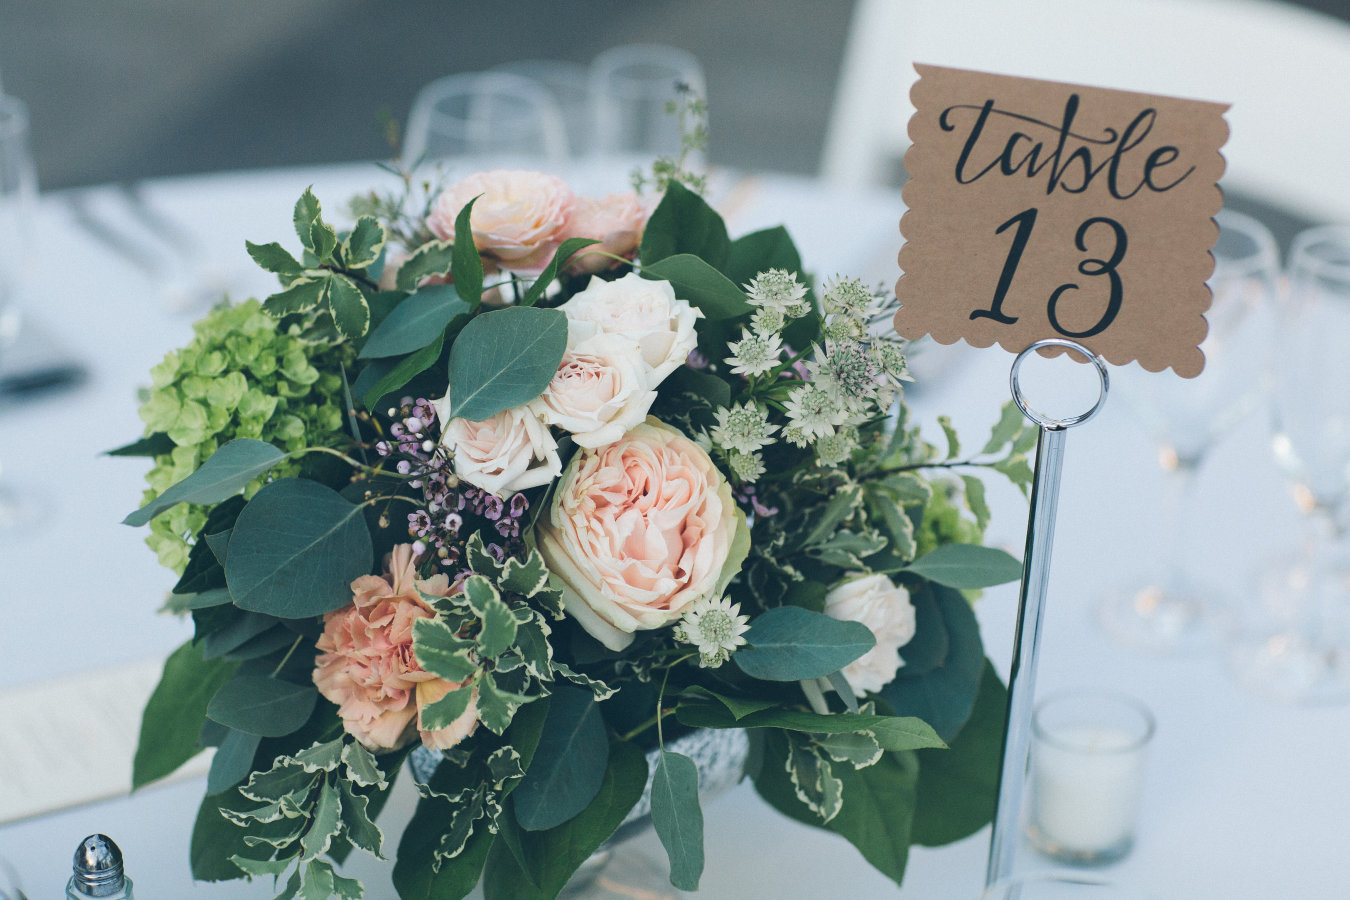 Centerpieces Designed For: Tower Hill Botanic Wedding   Photography: Abby Lorenz